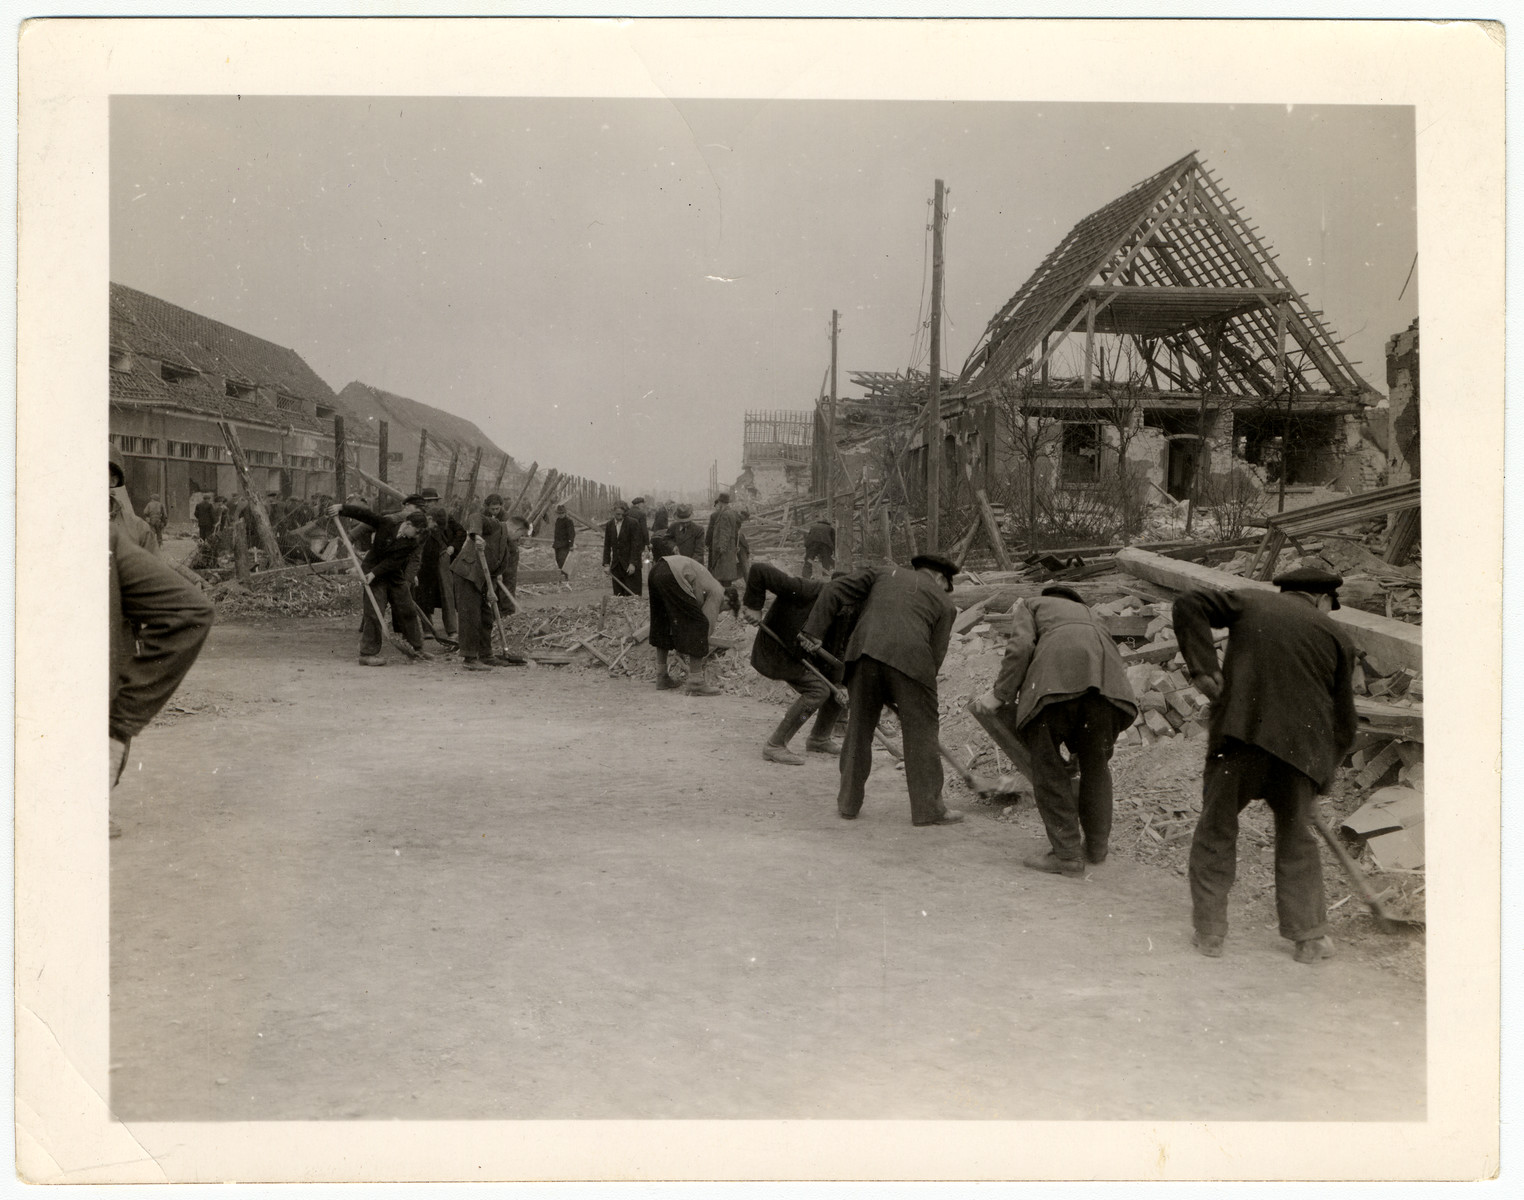 """German civilians clear rubble from the Nordhausen camp to make room for corpses that were to be piled there.  Photo caption reads: """"German civilians clear rubble from N yard of Lager Nordhausen, a Gestapo concentration camp near Nordhausen, Germany, in order to make room for bodies of several hundred inmates who died of starvation or were shot by Gestapo men. The concentration camp, according to G-2, 104th Infantry Division, 1st U.S. Army, had from 3,000 to 4,000 inmates, including French, Polish, Belgian, a few Russian and several German political prisoners. All the prisoners were maltreated, beaten and starved."""""""